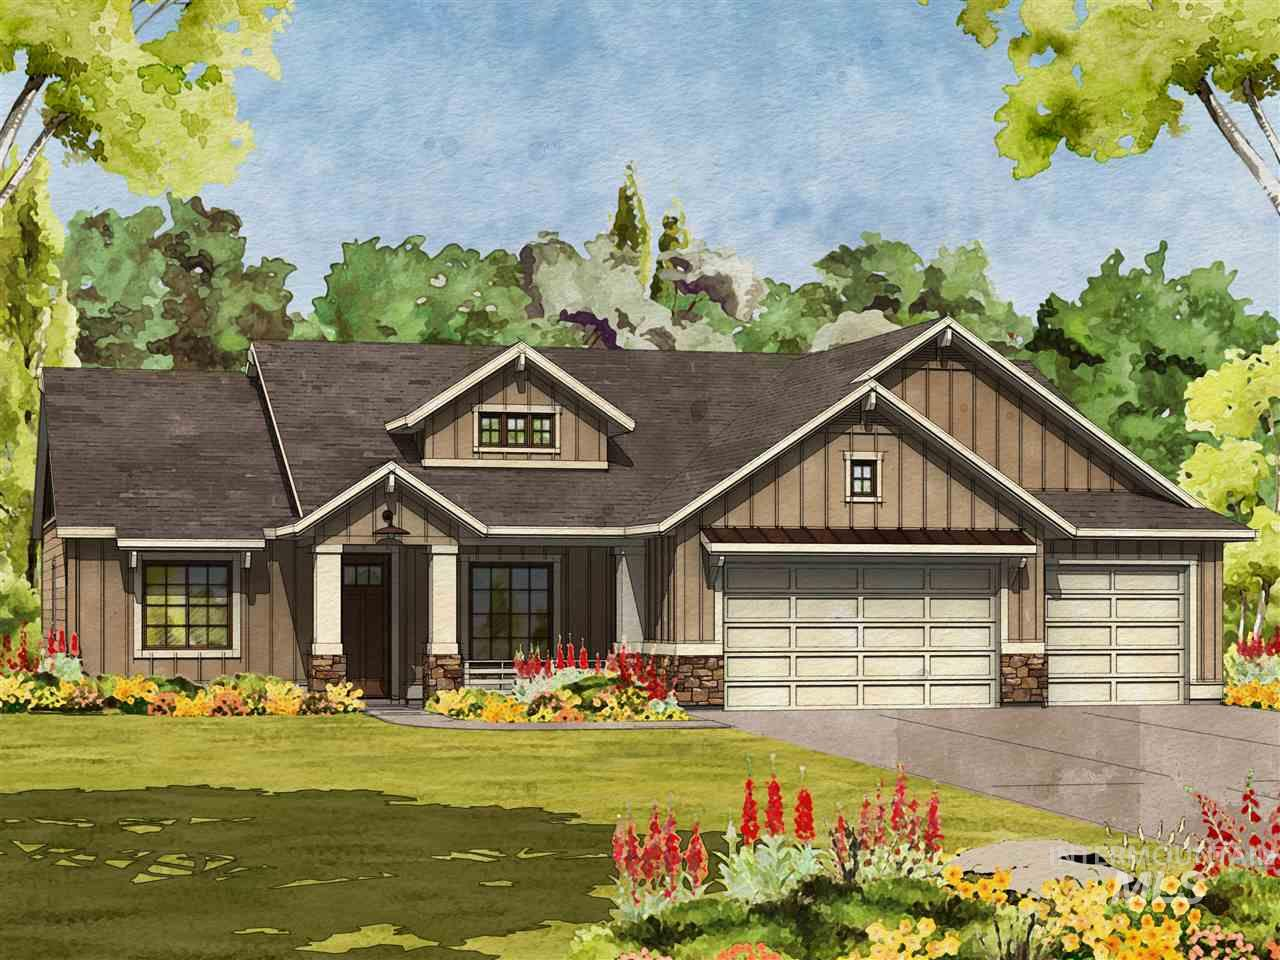 The Kingston by Brighton Homes. This plan has it all! Den, large  kitchen with walk in pantry. This home features a stainless Bosch appliance package, custom cabinets, and Kohler throughout - Brighton standard. Stop in to see one. The Kingston is full of Brighton standard finishes and design. 100% Energy Star Certified home.